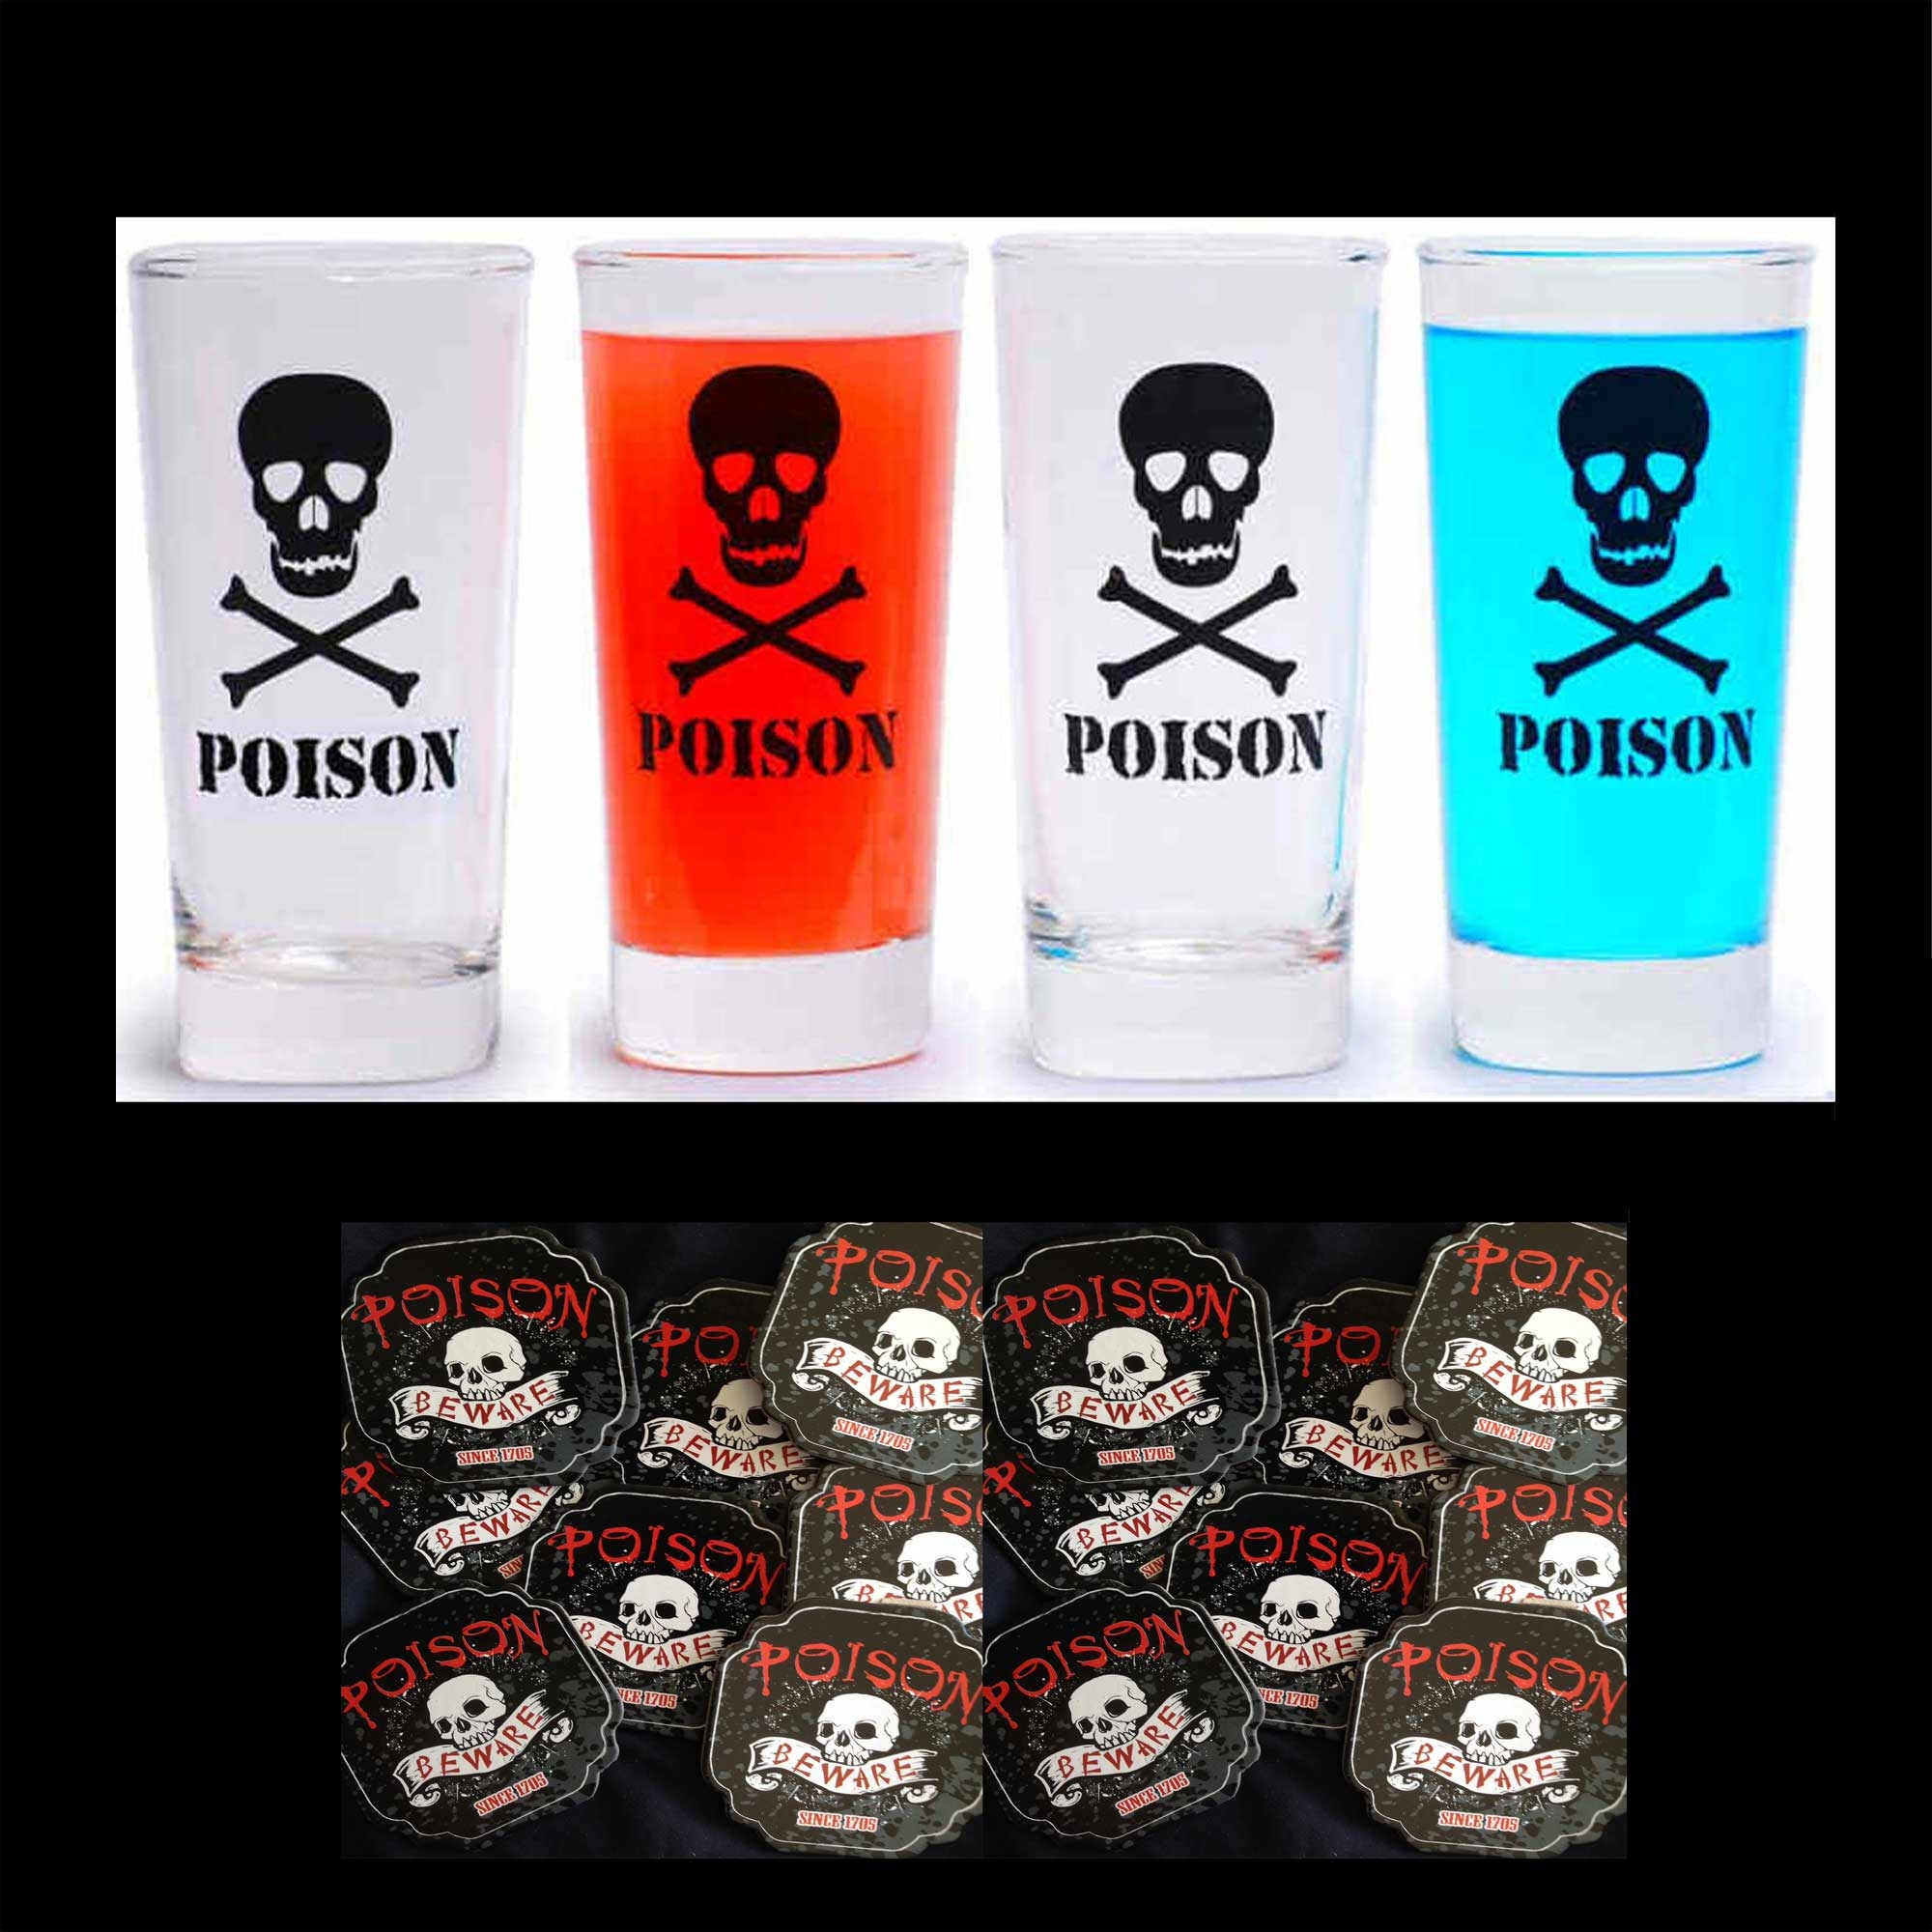 POISON SKULL CROSSBONES CLEAR DRINK GLASSES-4 Piece SET-16 Oz-Highball Cocktail Beer Pint Glassware Pirate Theme MAN CAVE Tiki Bar Beverage Drinkware Soda Pop Soft Drink Drinking Water Glass-Circleware Brand Limited Edition Design-with FREE COASTERS